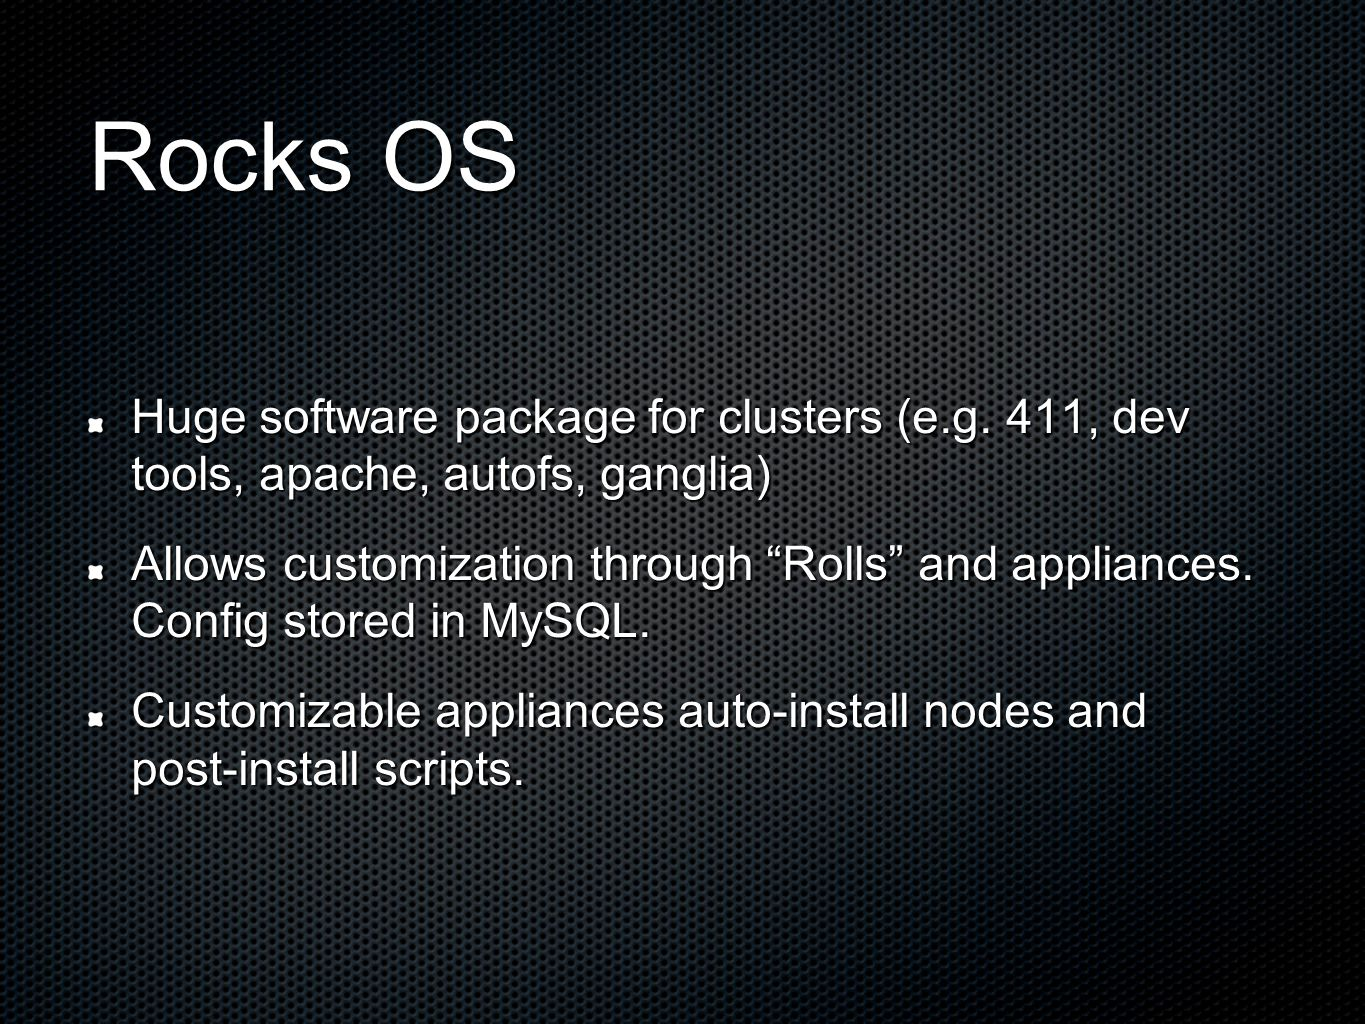 "Rocks OS Huge software package for clusters (e.g. 411, dev tools, apache, autofs, ganglia) Allows customization through ""Rolls"" and appliances. Config"